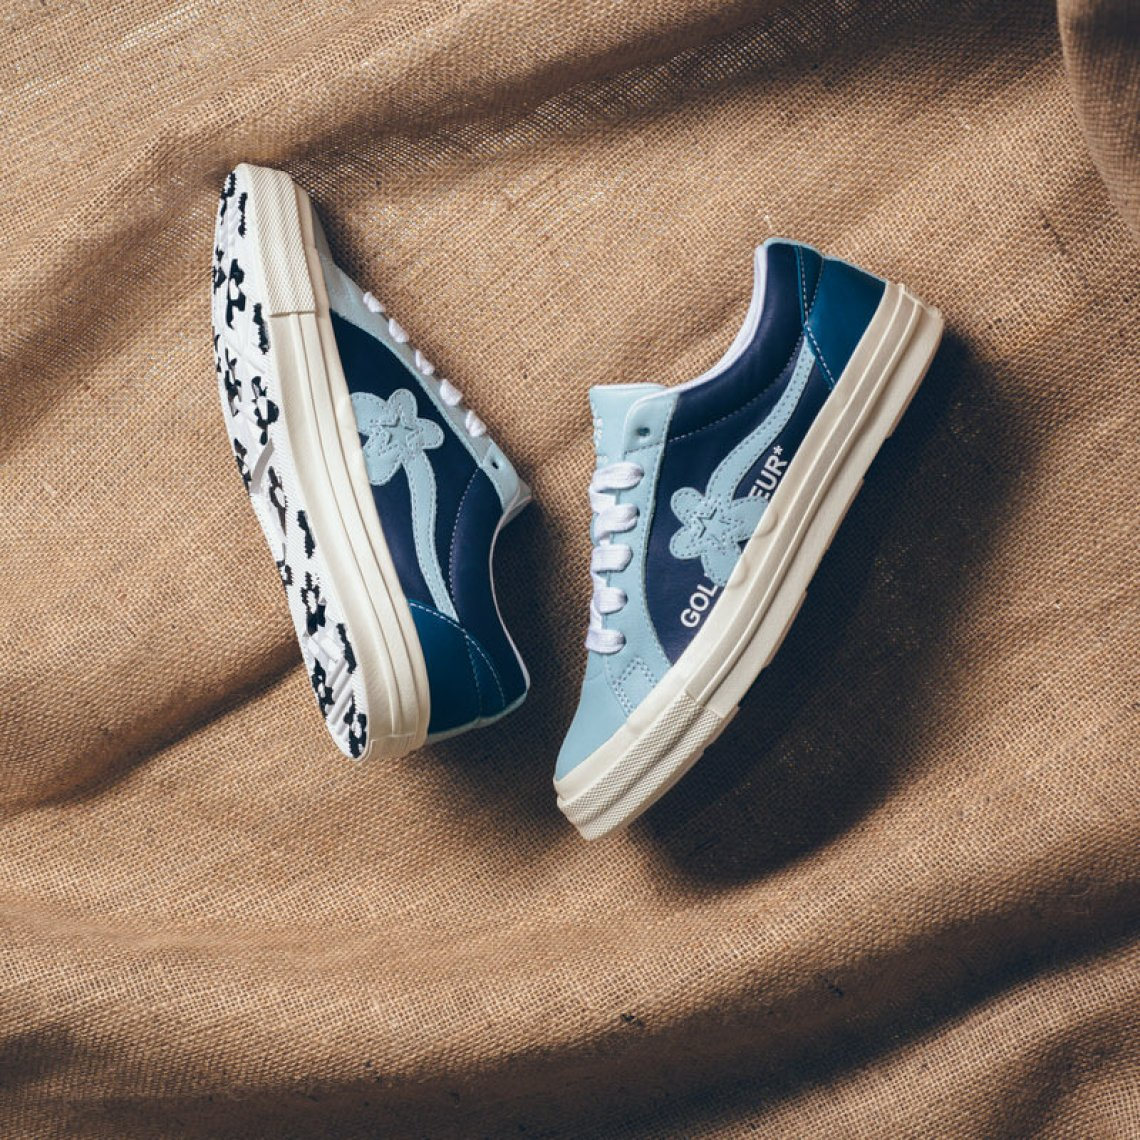 81474fbbfb19 Another Look at the Converse Golf Le Fleur